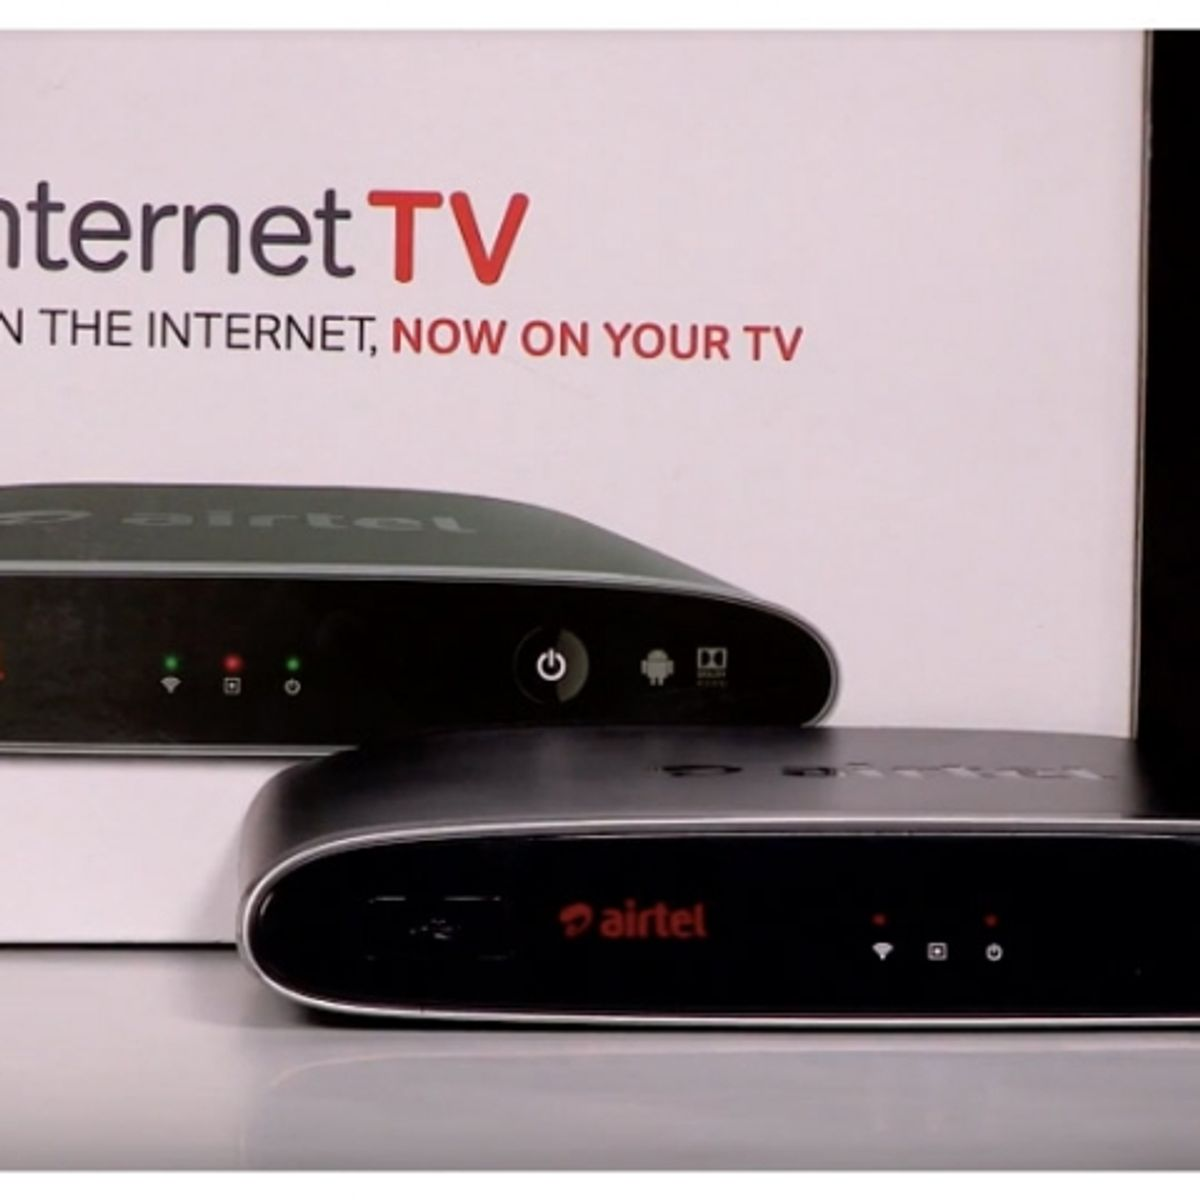 A Quick Look at the all-new Airtel Internet TV | Digit